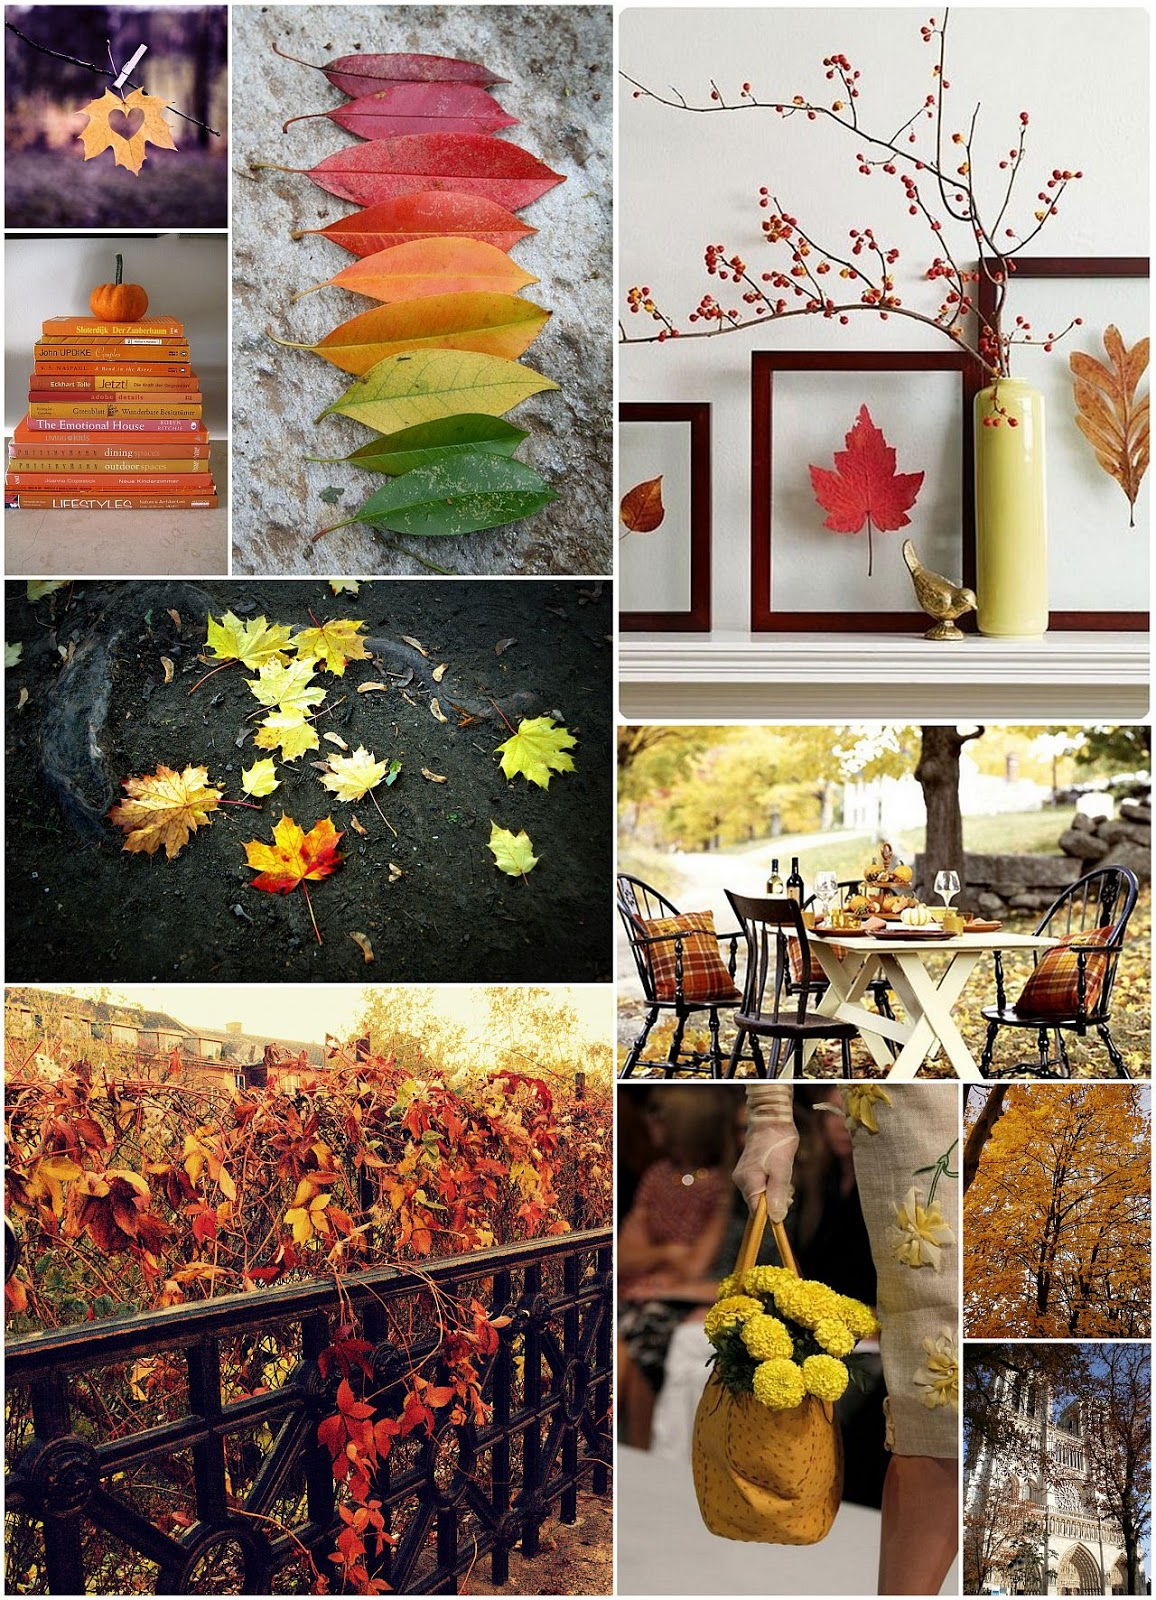 gorgeous autumn nature and decoration mood board inspritaion